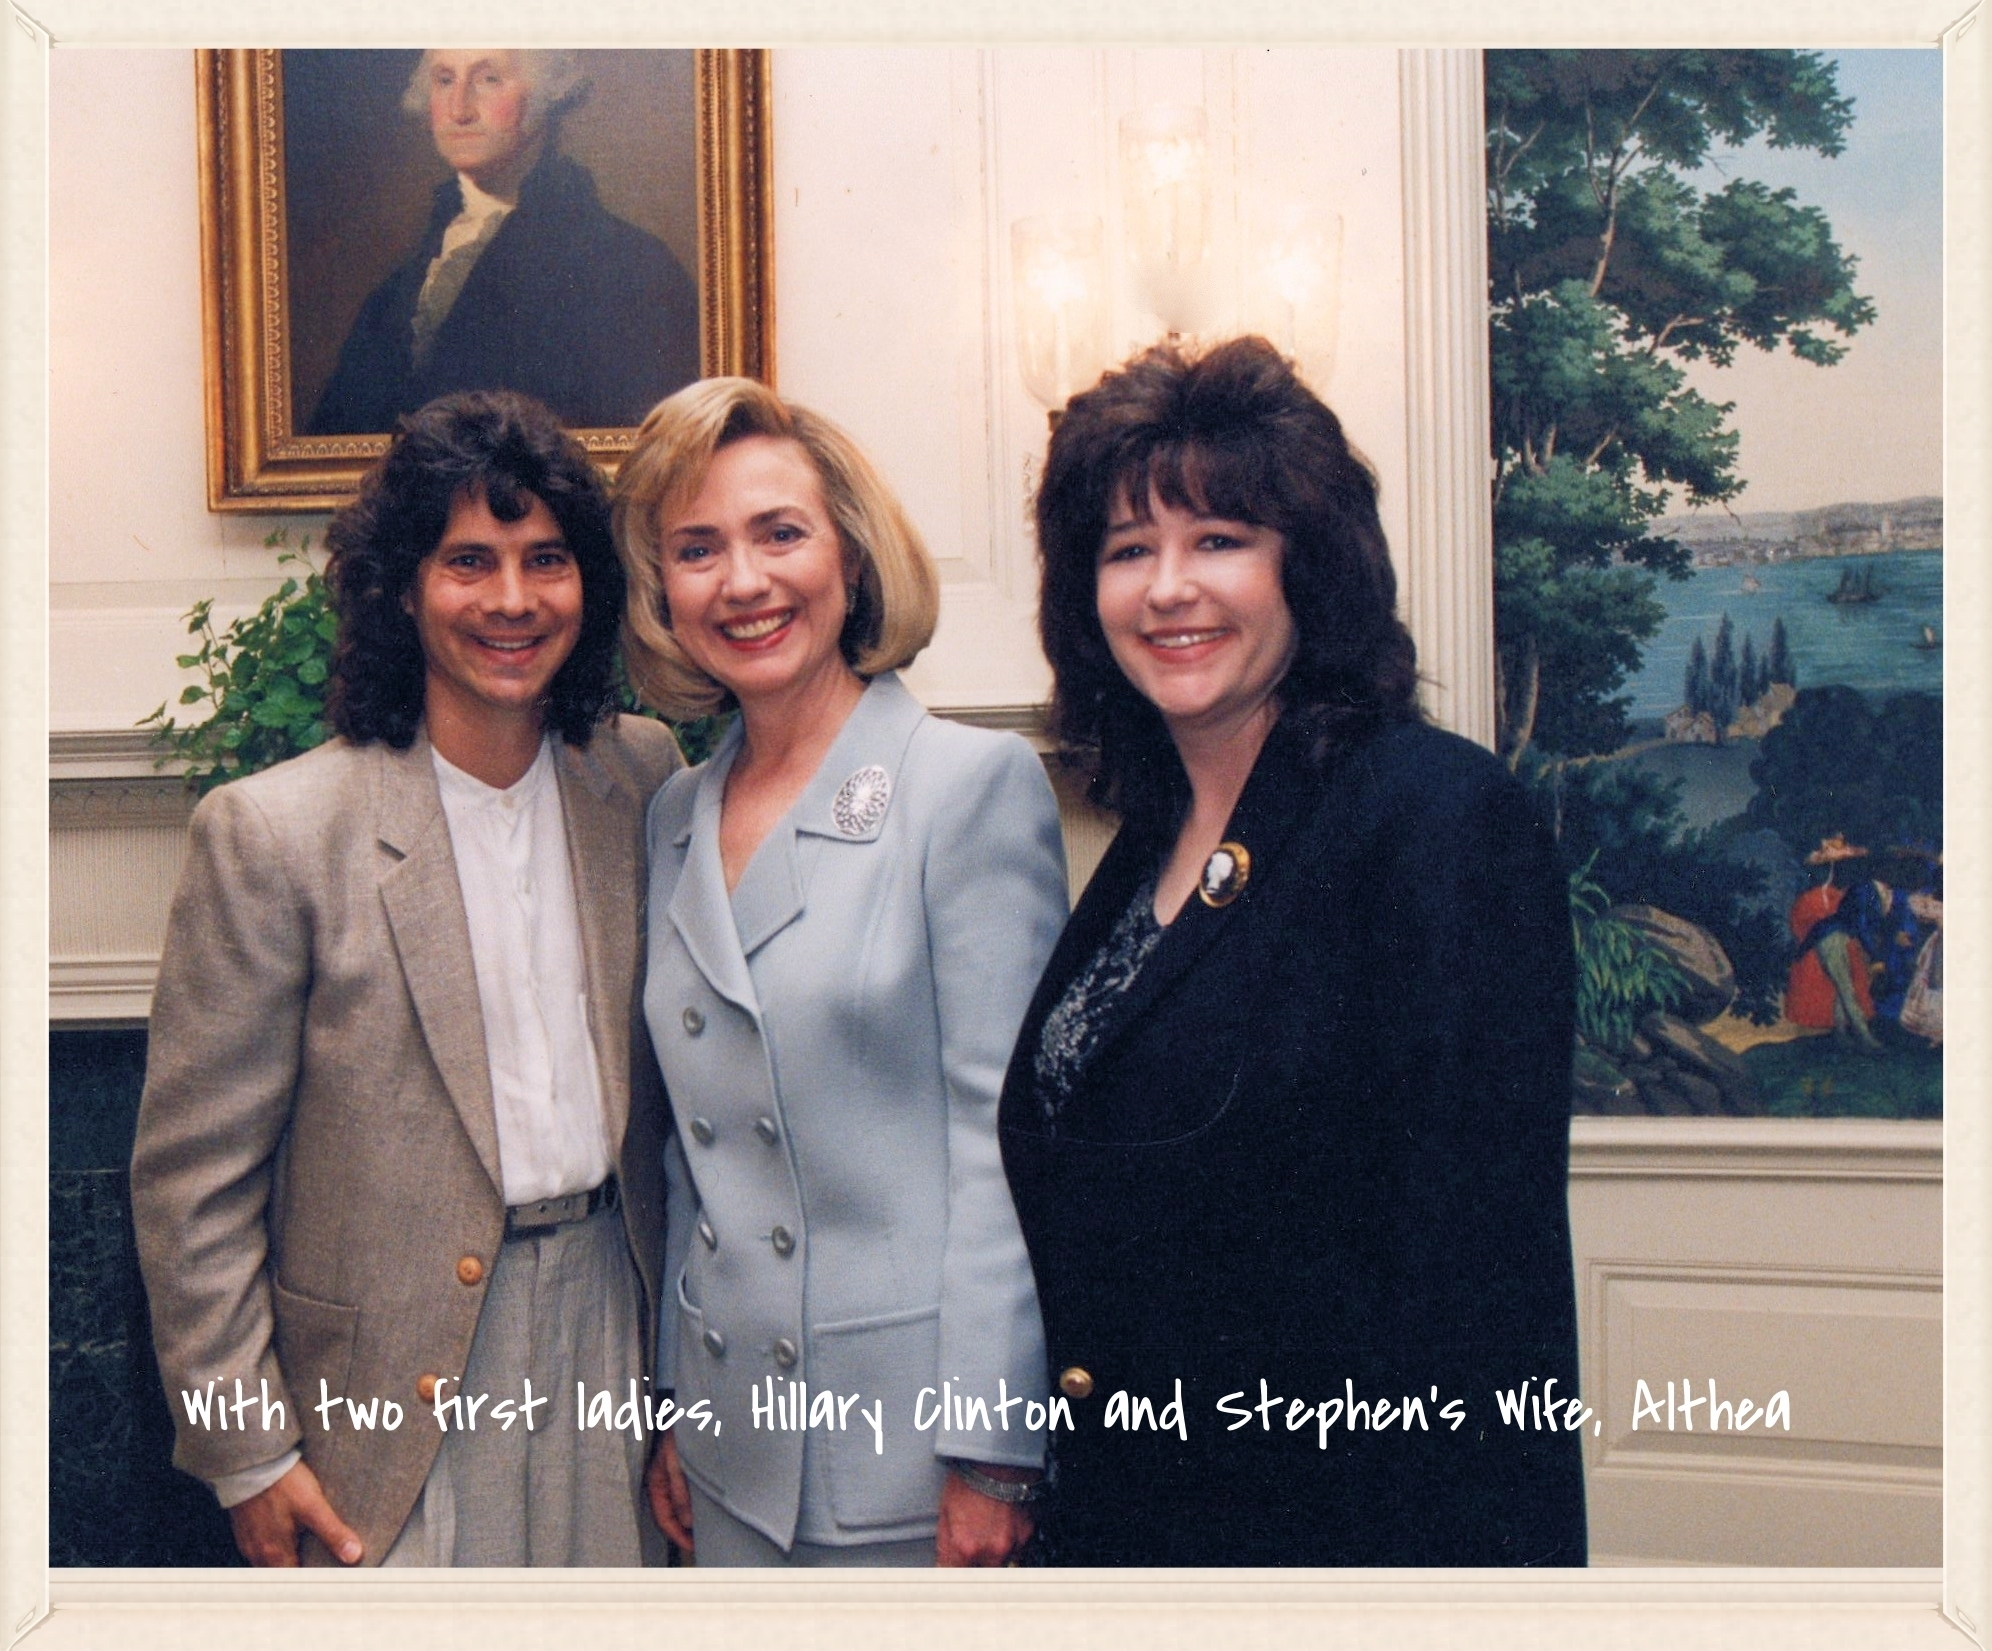 At The White House with Two First Ladies, Hillary Clinton and Althea Schwartz (Stephen's Wife)